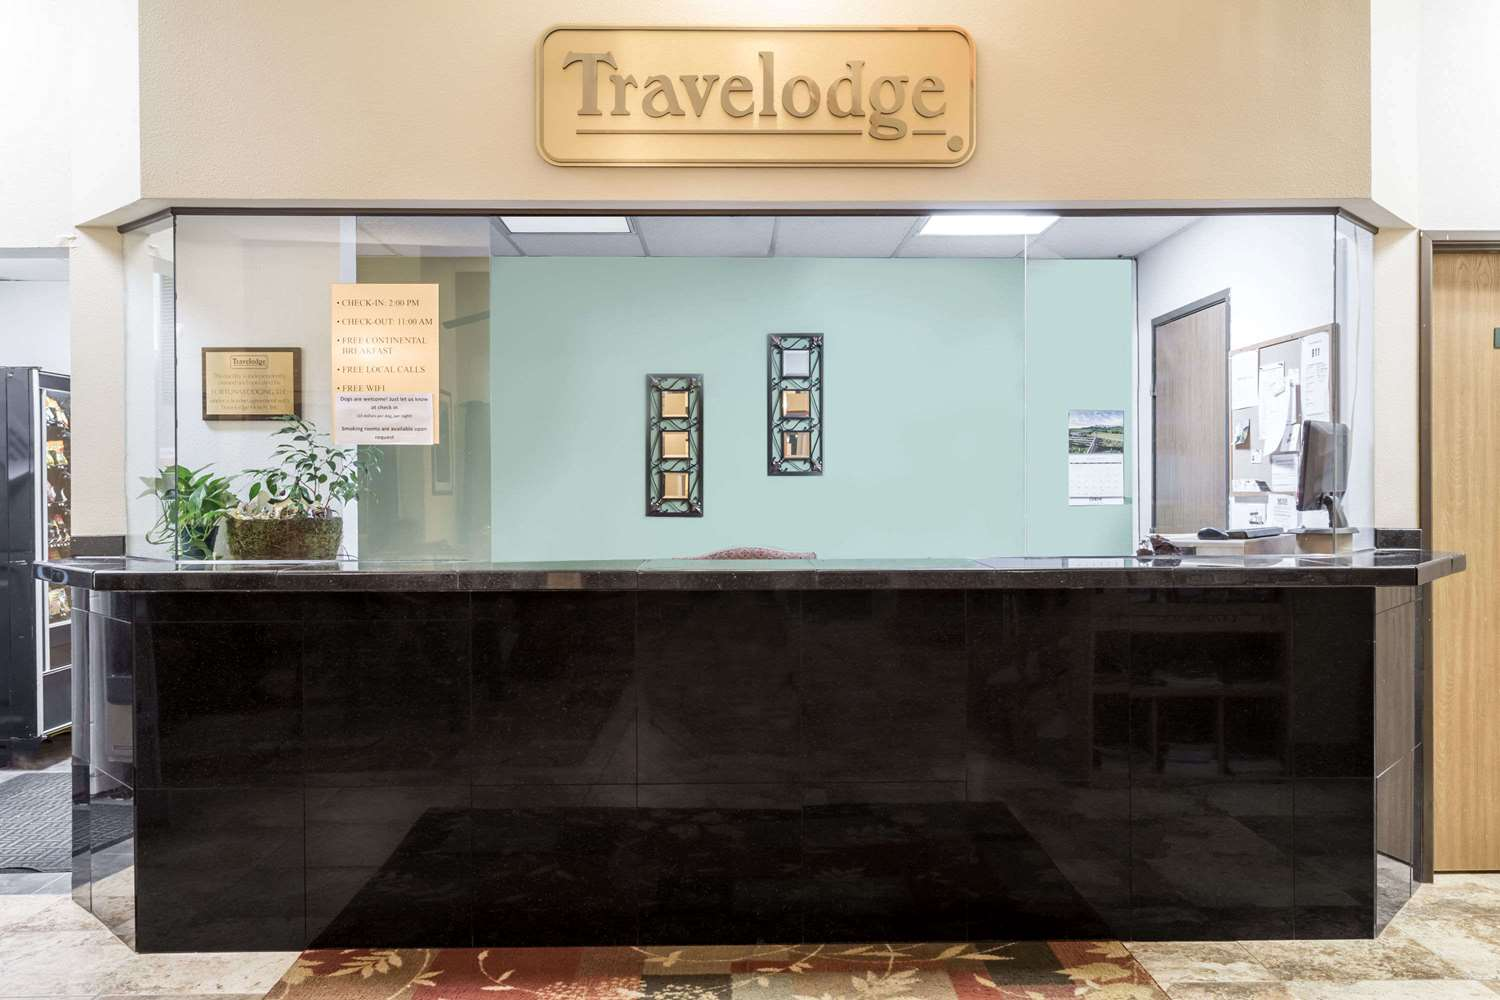 Lobby - Travelodge Longmont